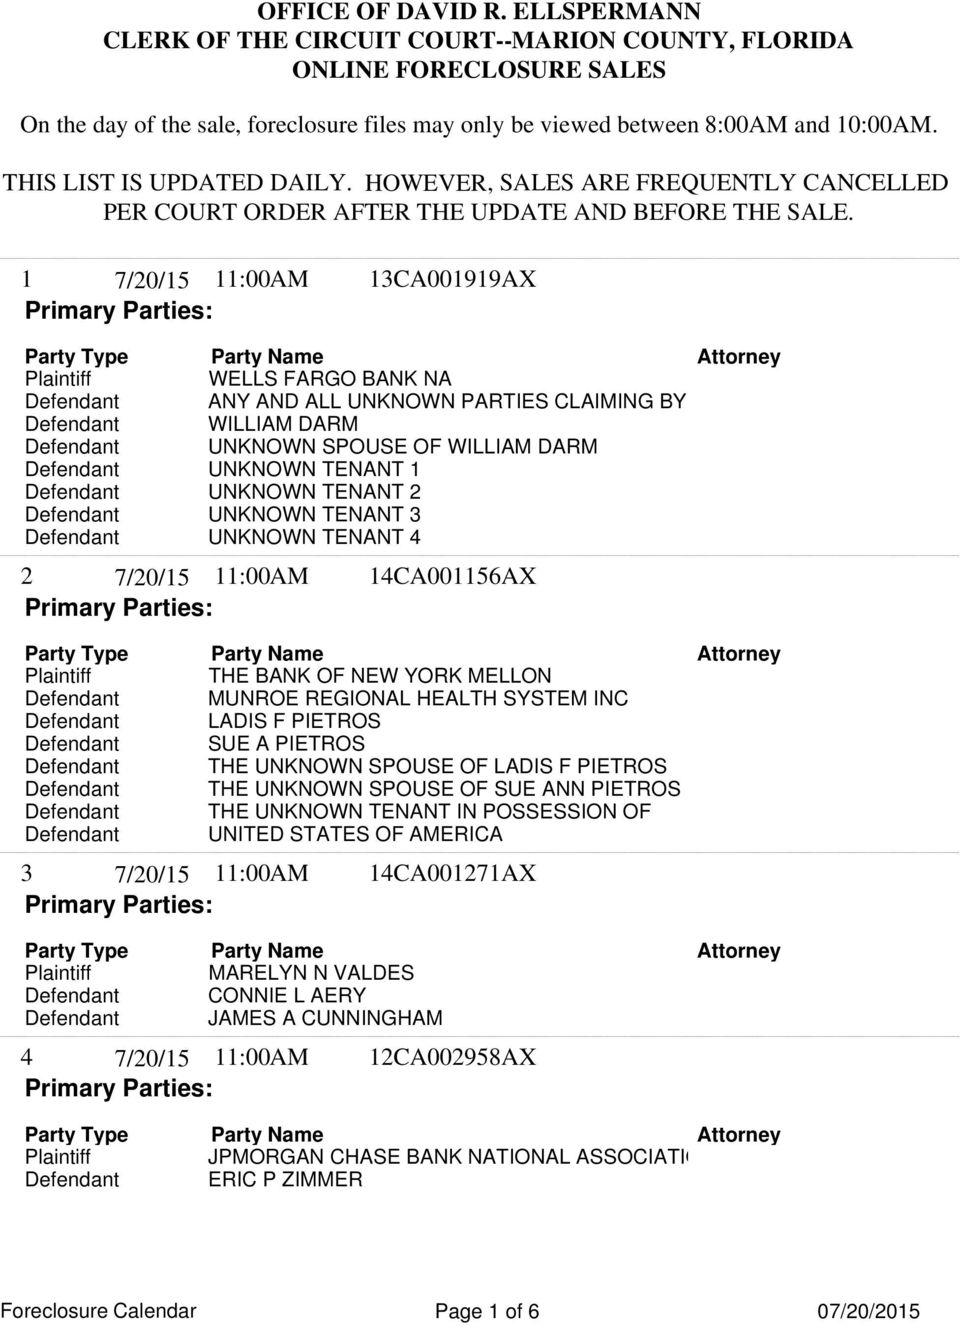 1 11:00AM 13CA001919AX WELLS FARGO BANK NA Defendant WILLIAM DARM Defendant UNKNOWN SPOUSE OF WILLIAM DARM Defendant UNKNOWN TENANT 1 Defendant UNKNOWN TENANT 2 Defendant UNKNOWN TENANT 3 Defendant